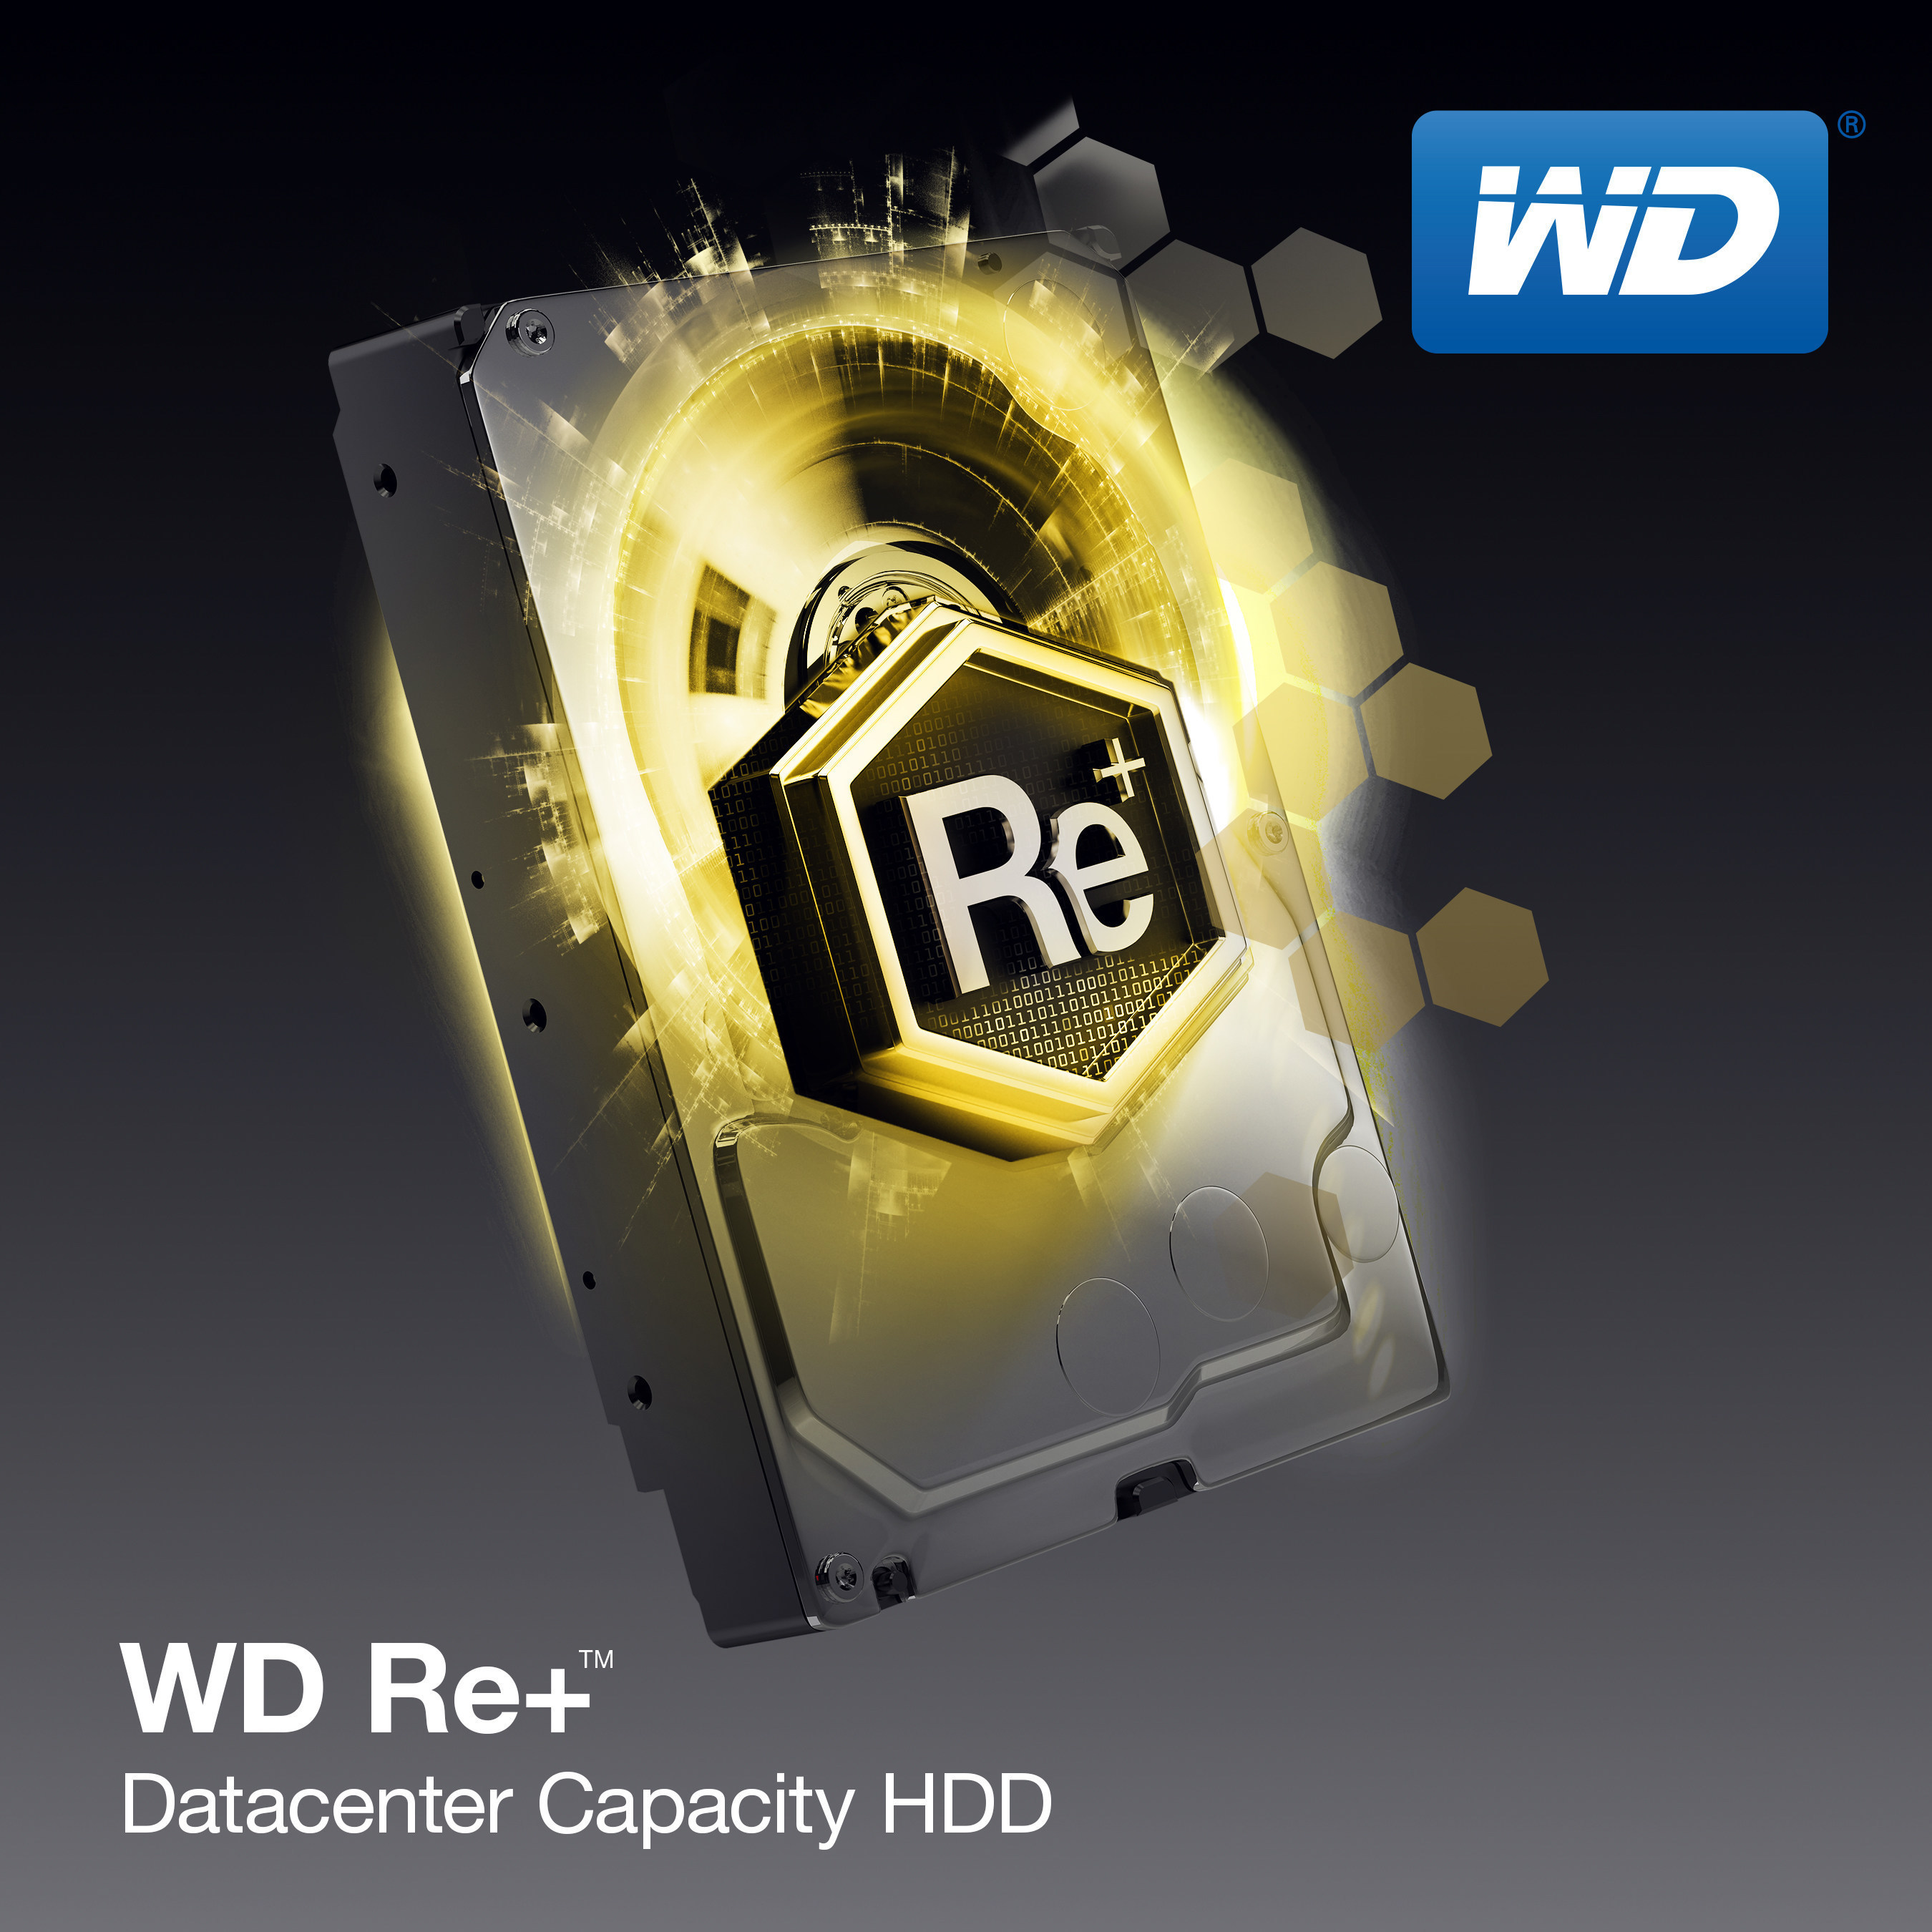 WD' Delivers World's Most Power-Efficient High-Capacity 3.5-Inch HDD For Modern Datacenters